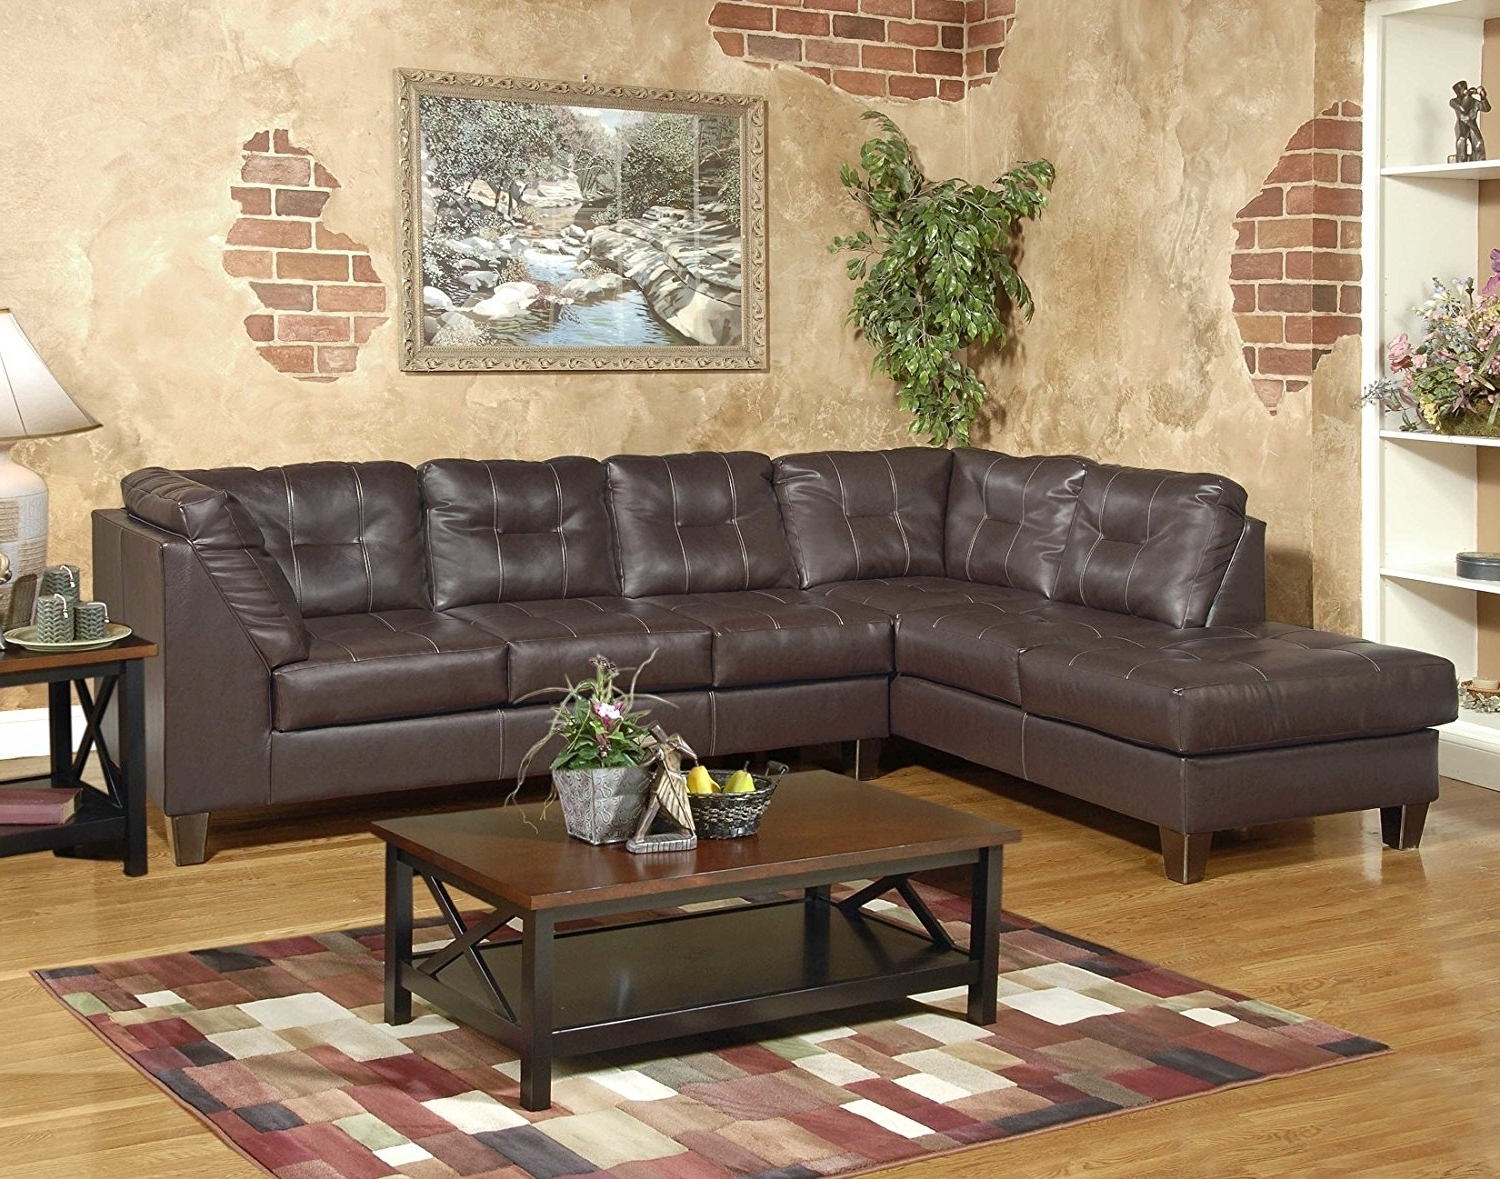 Well Known Amazon: Roundhill Furniture Marinio Chocolate Faux Leather With Regard To Chocolate Sectional Sofas (View 14 of 15)